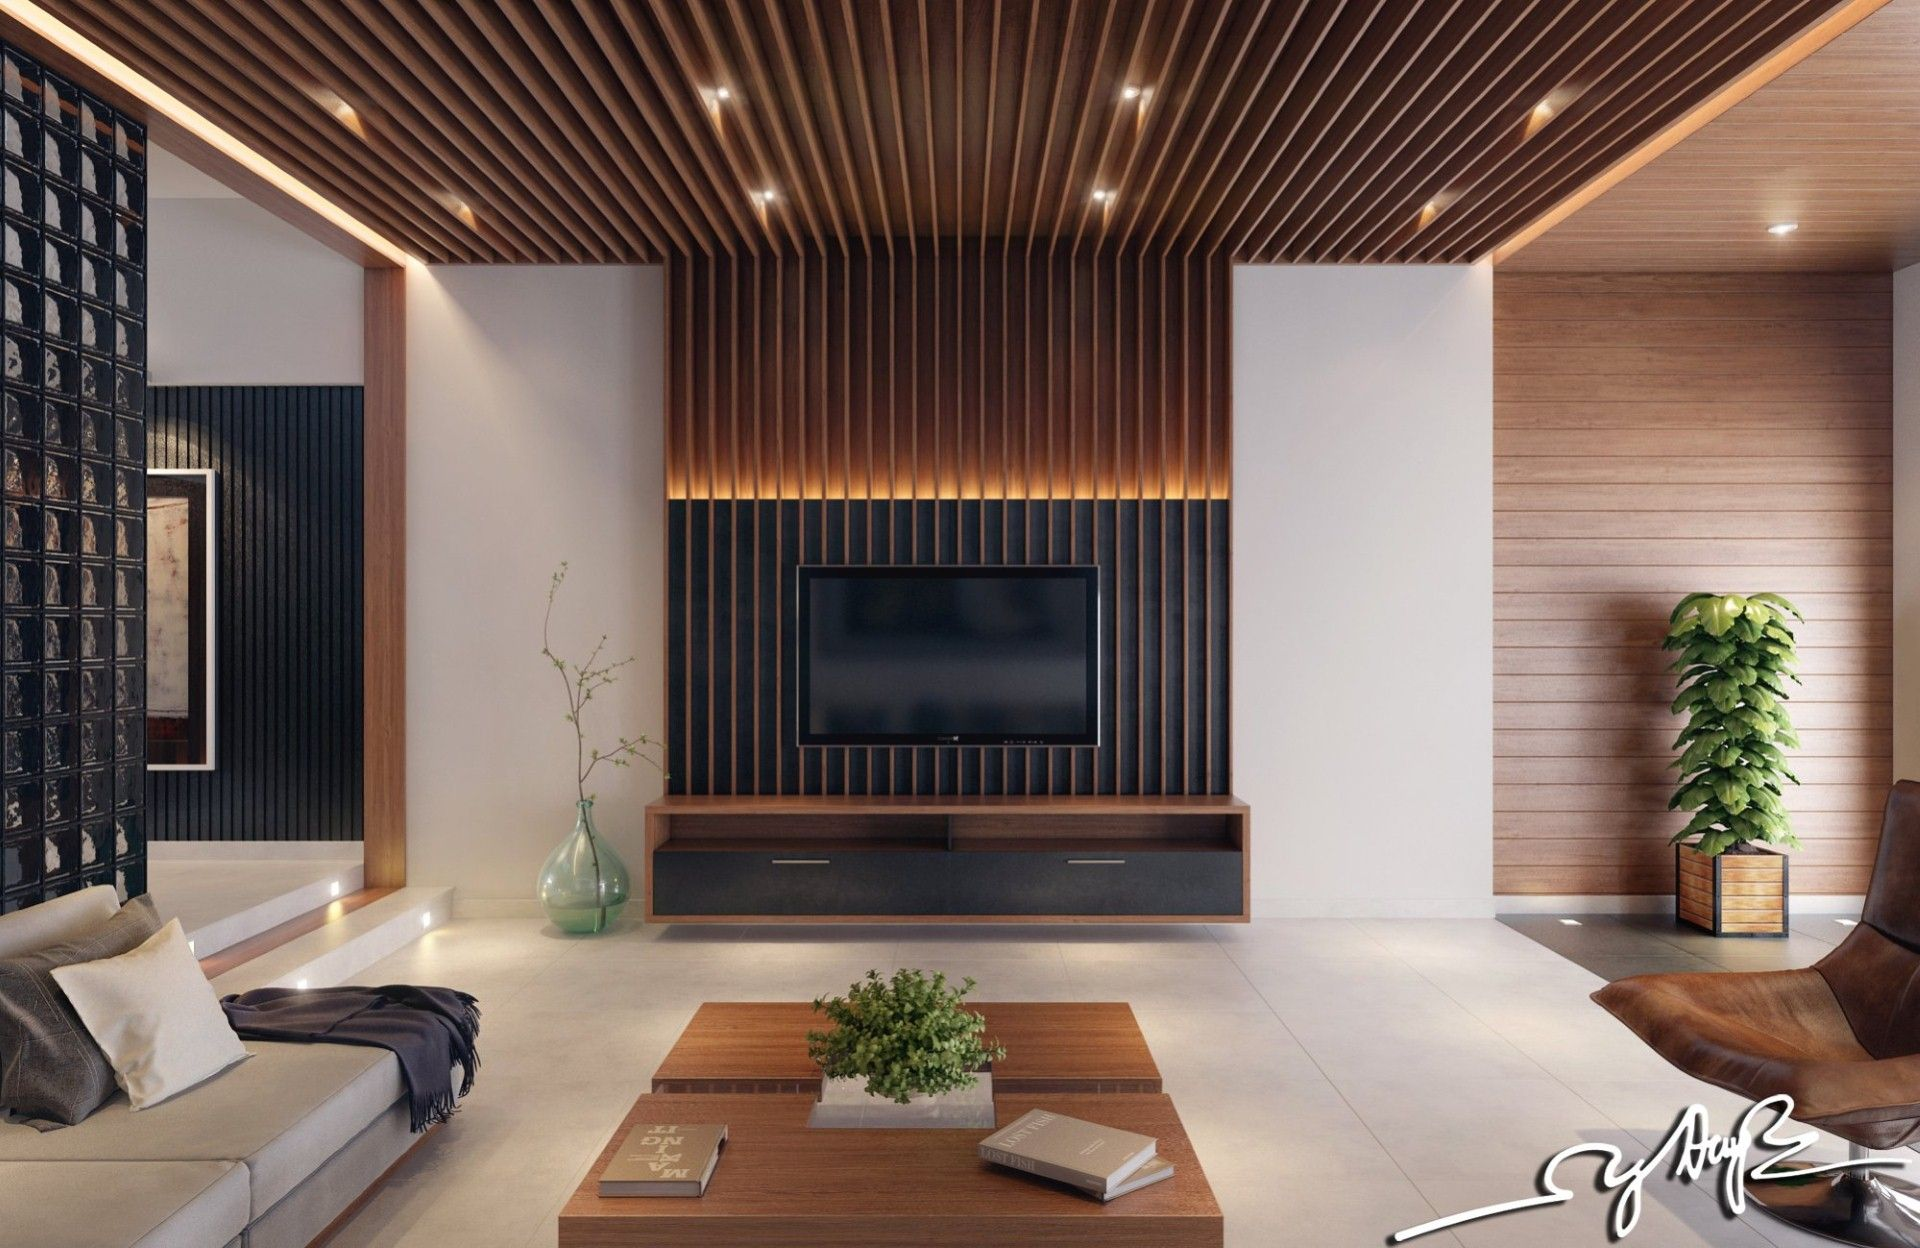 Wooden Ceilings Style and Substance bined